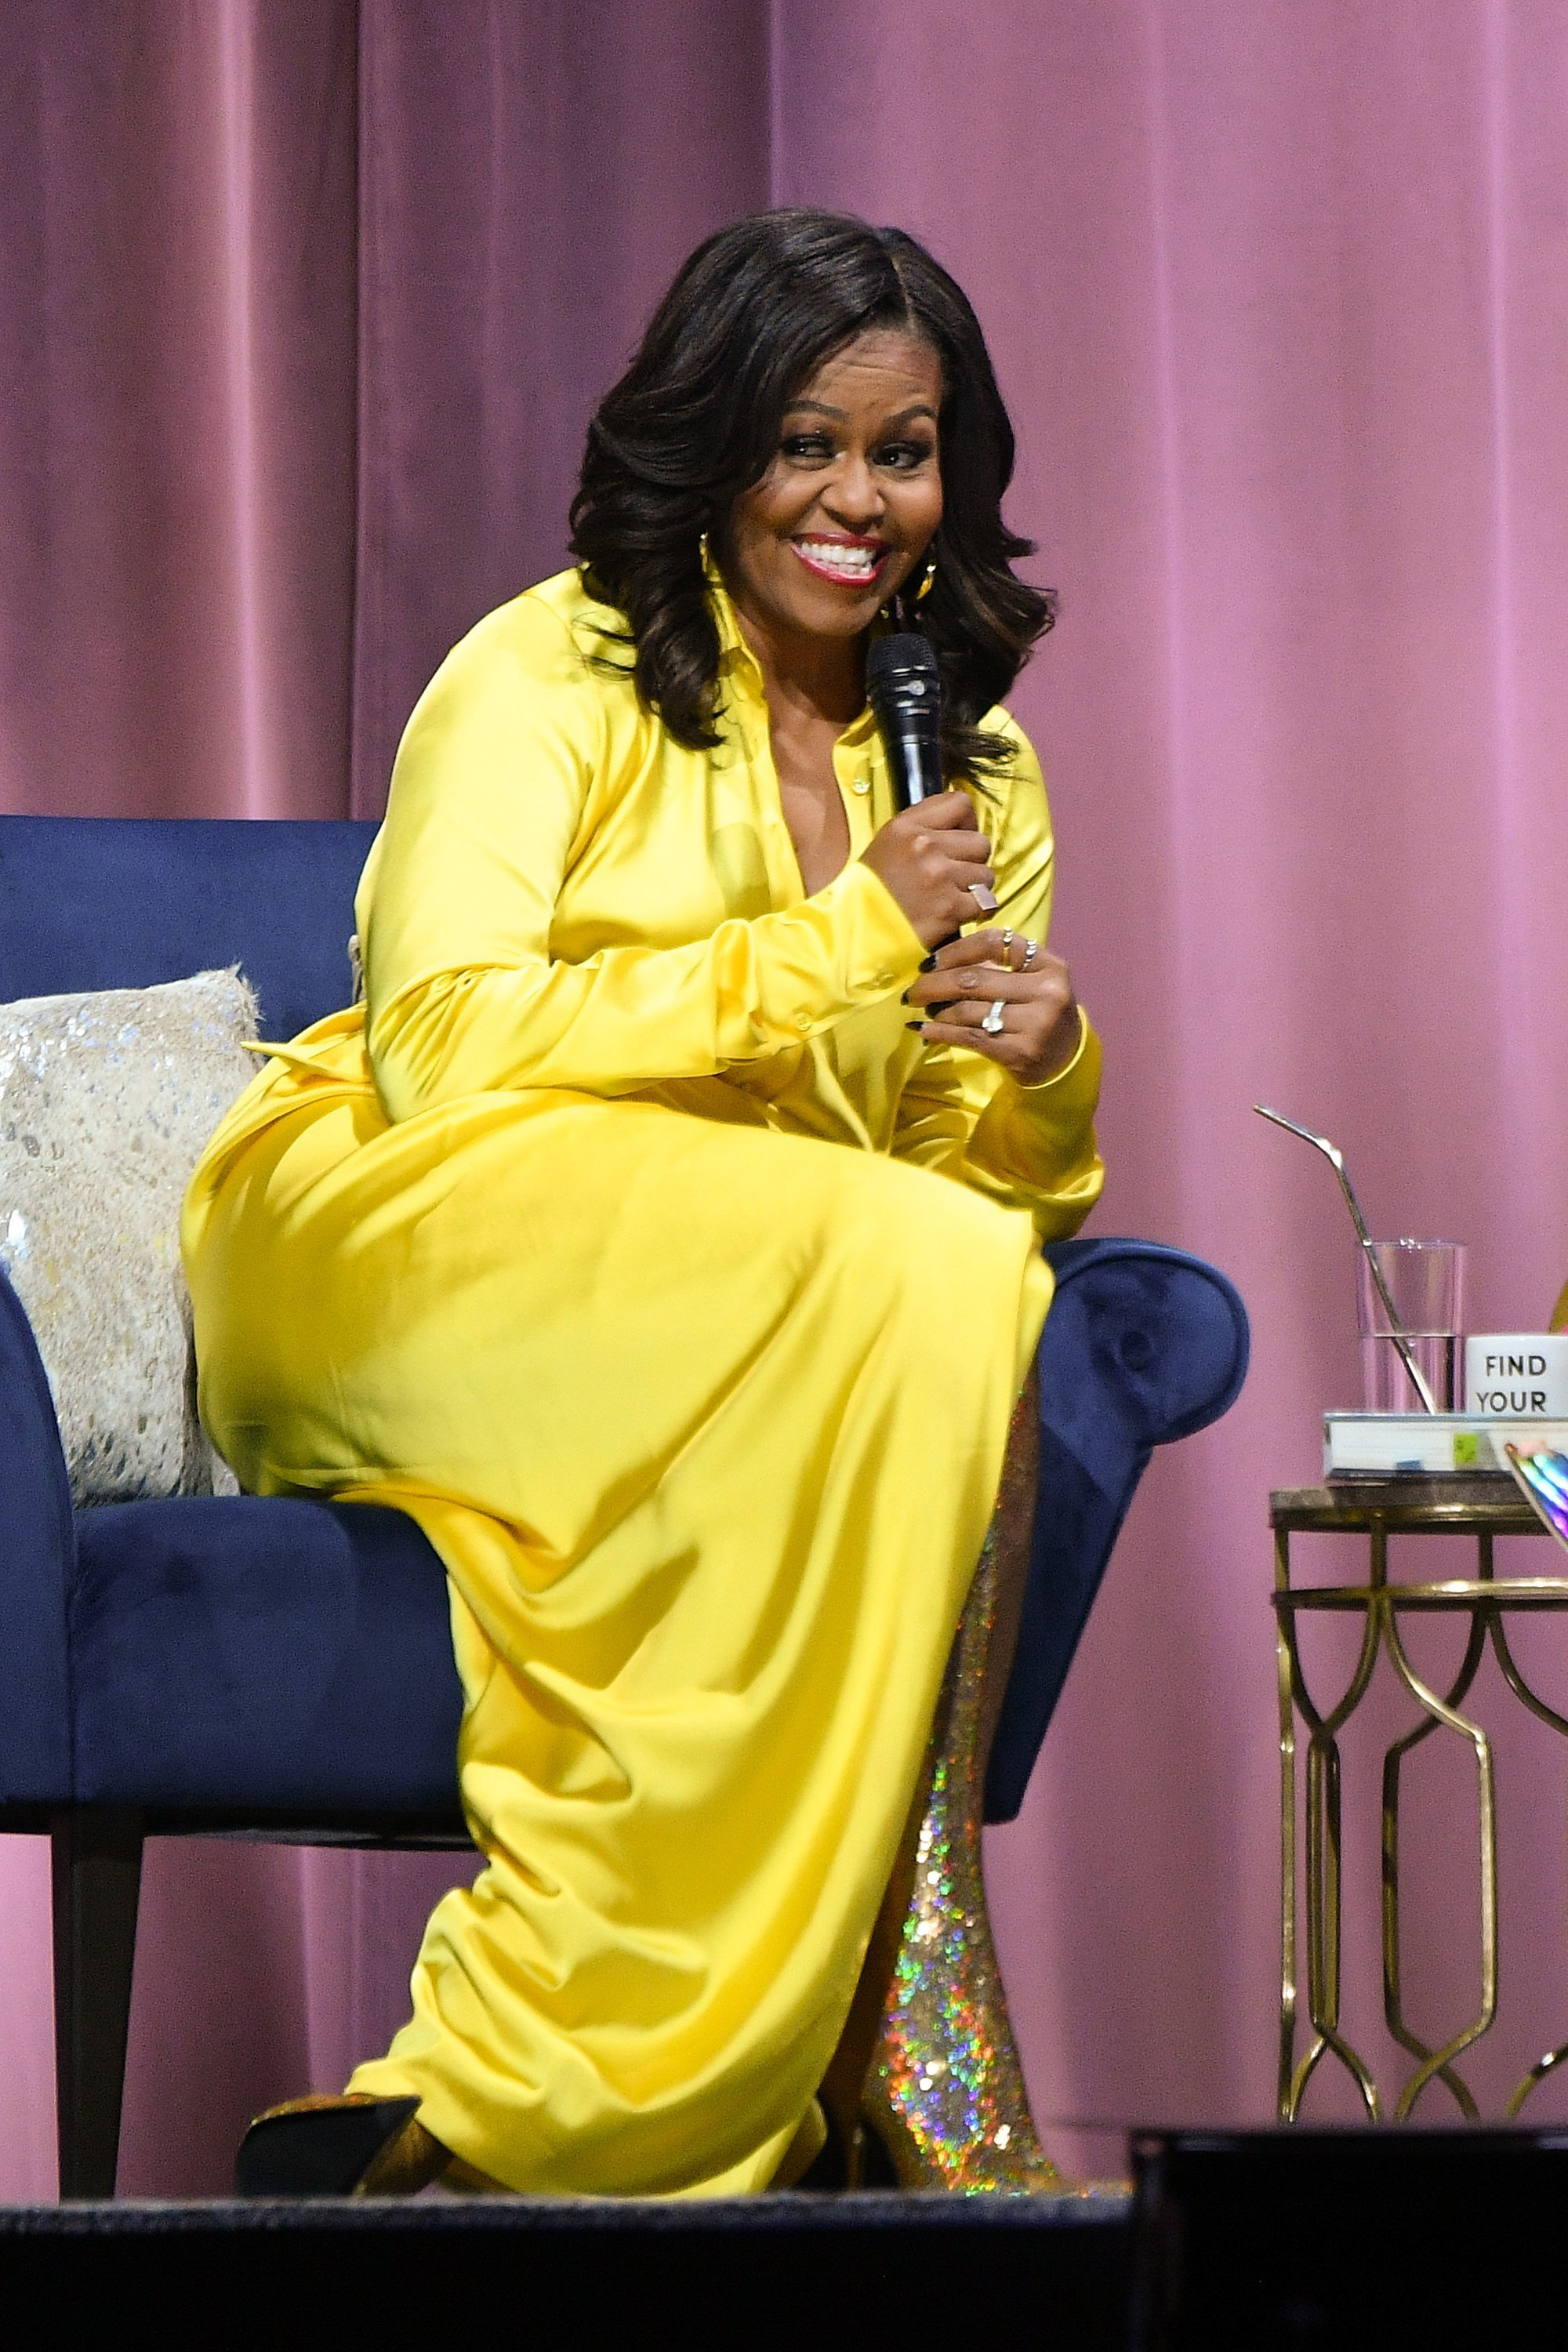 Michelle Obama discusses her book 'Becoming' at Barclays Center on December 19, 2018. | Photo: GettyImages